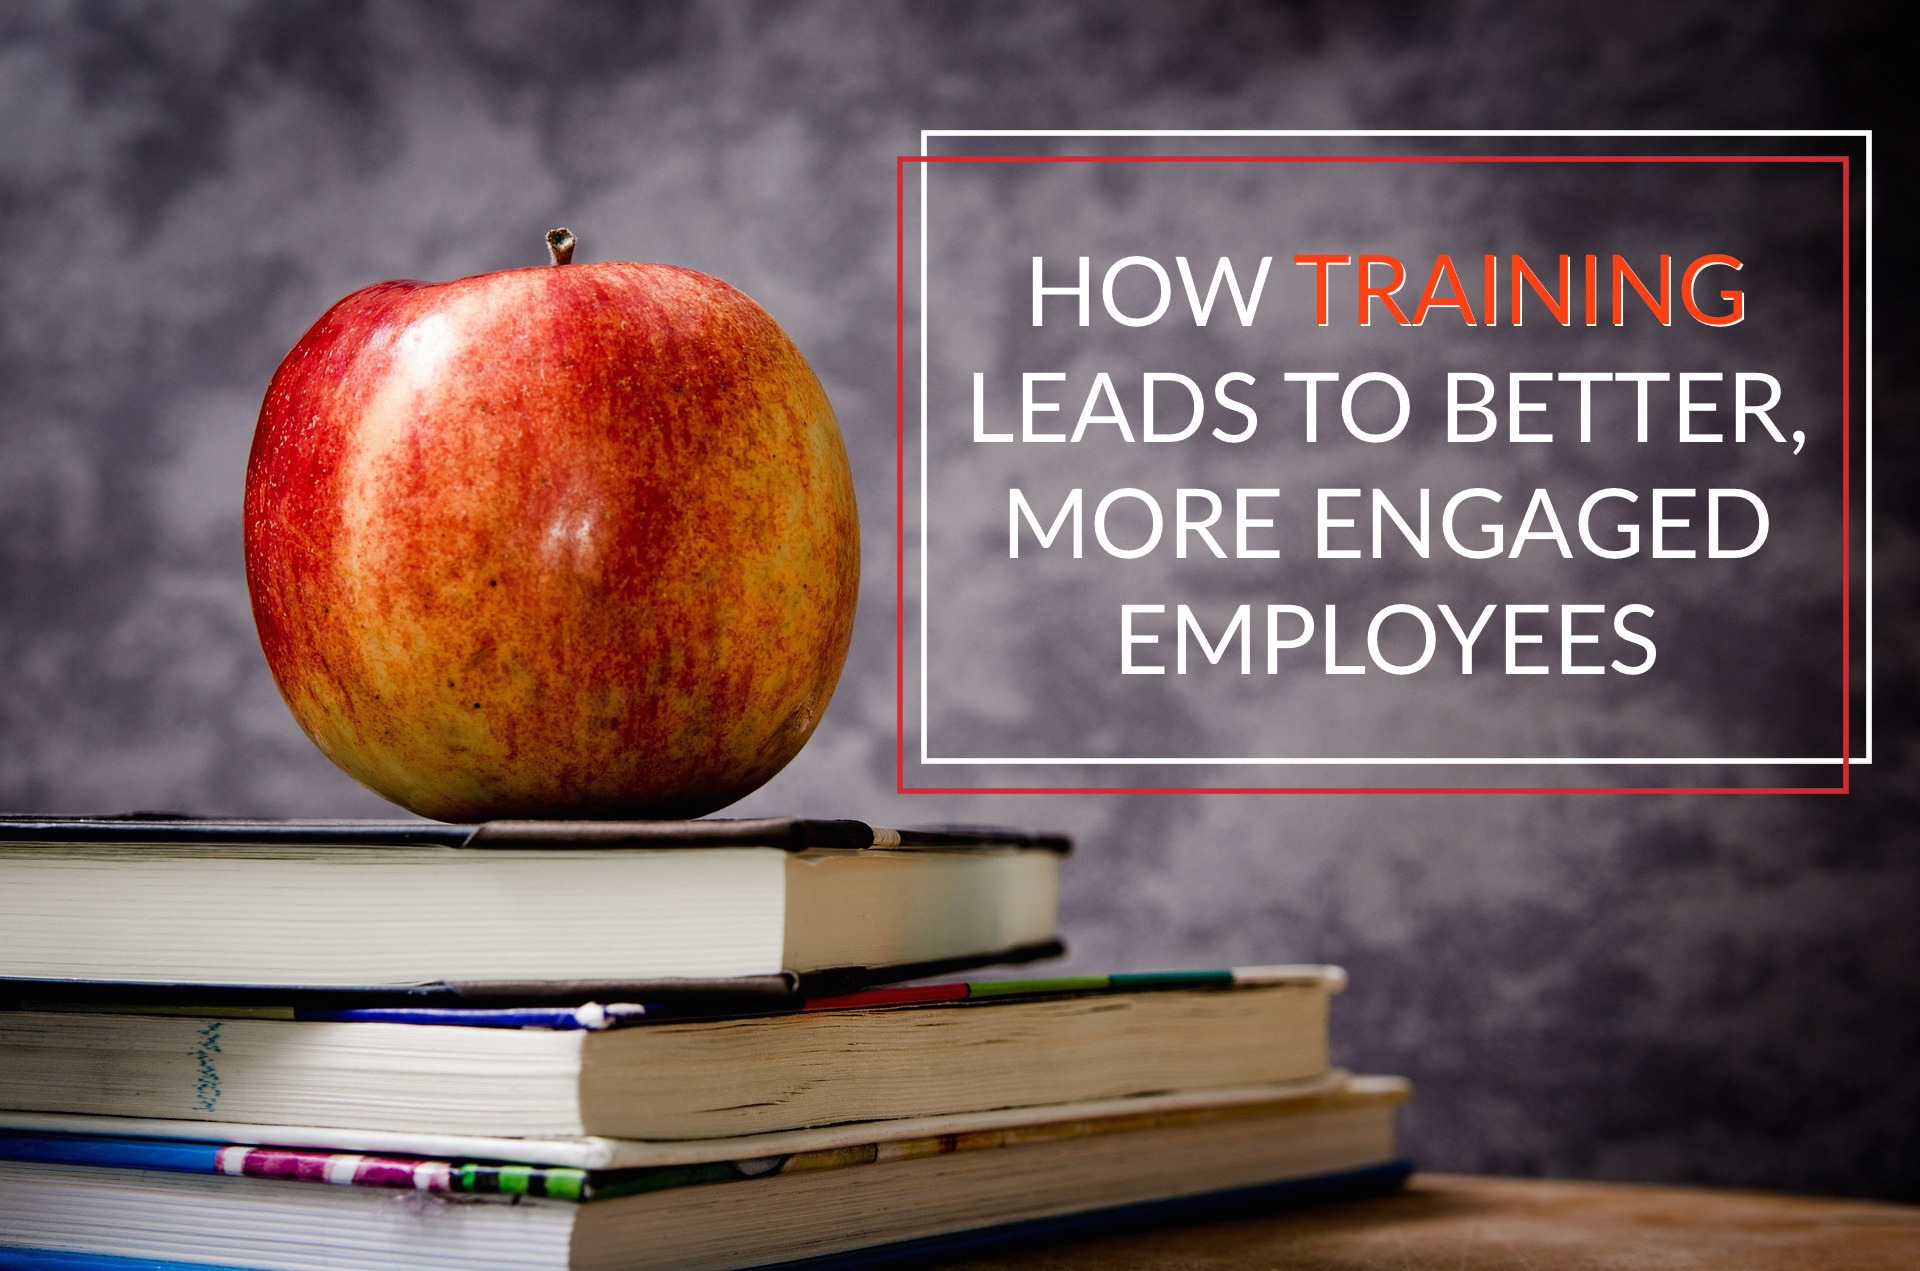 CATMEDIA Training Services How Training Leads to Better Employees